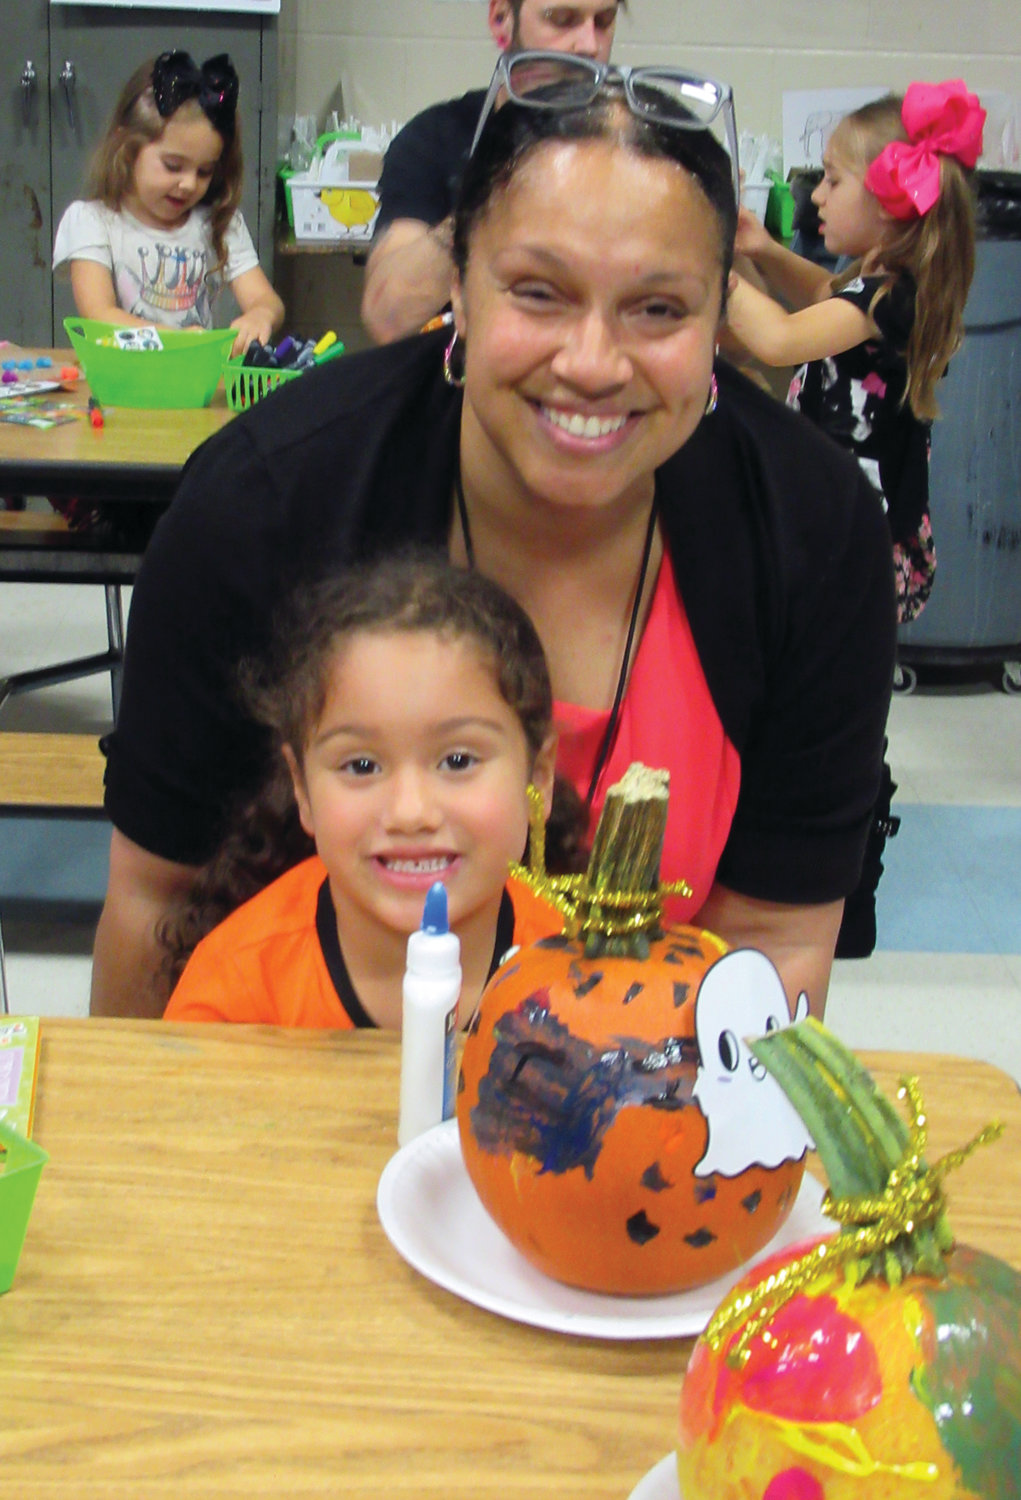 PROUD PARENT: Nicole Pope is all smiles as her daughter Isabella Rodriguez shows off her pumpkin painting during last week's annual event at the Early Childhood Center.